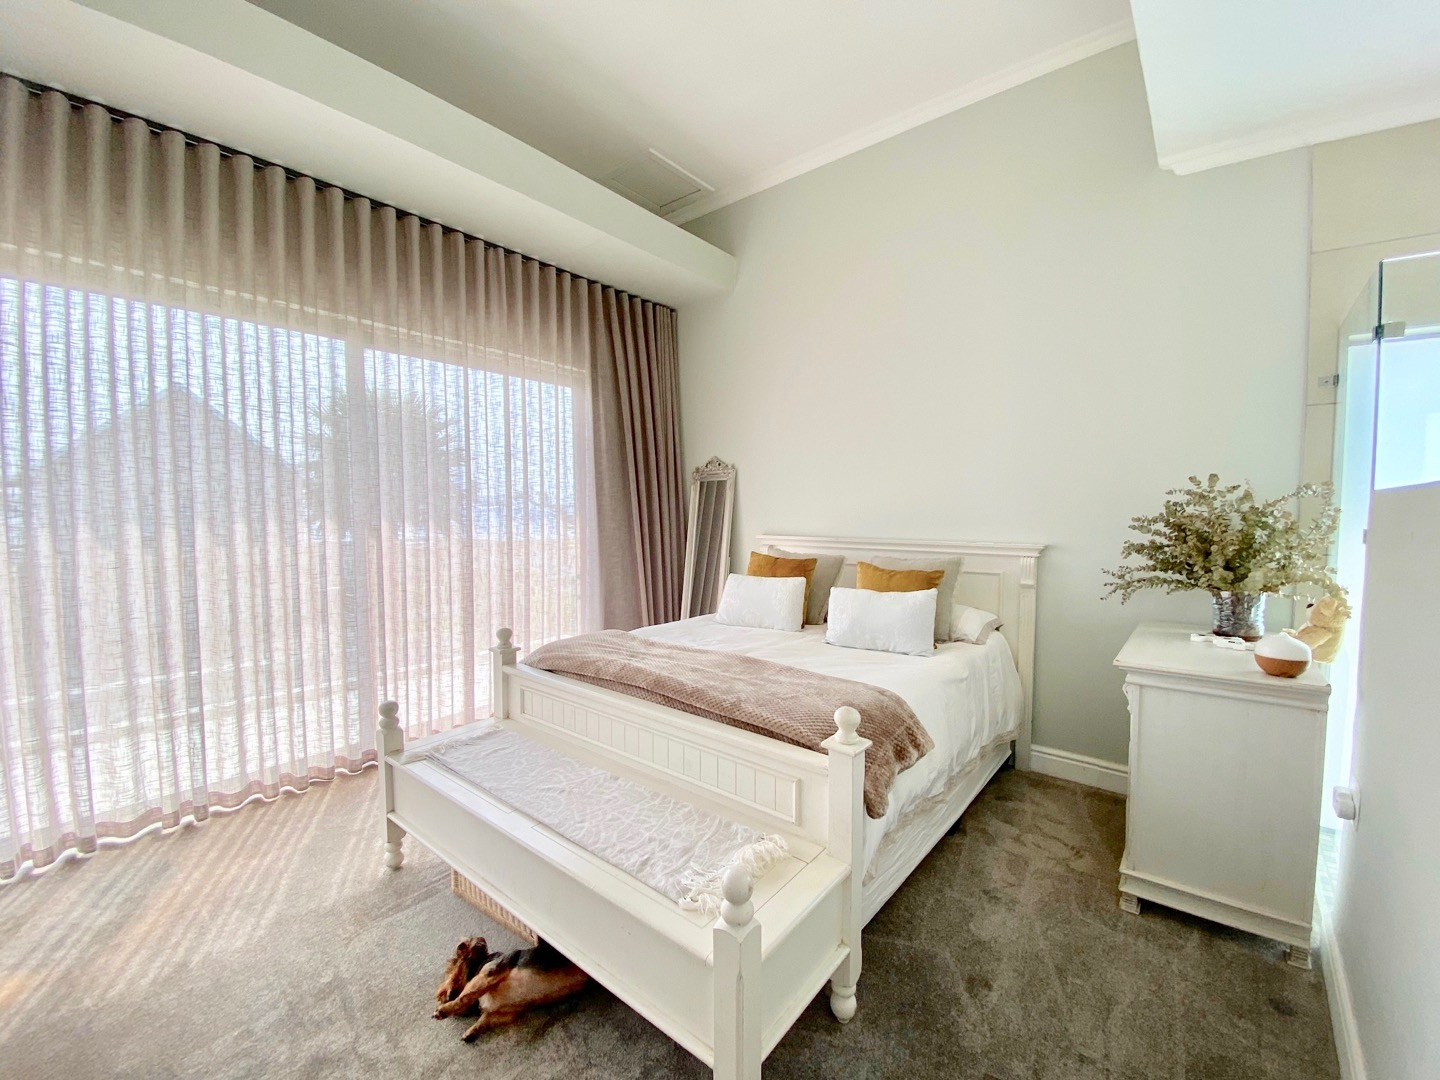 5 Bedroom House For Sale in Marina Martinique